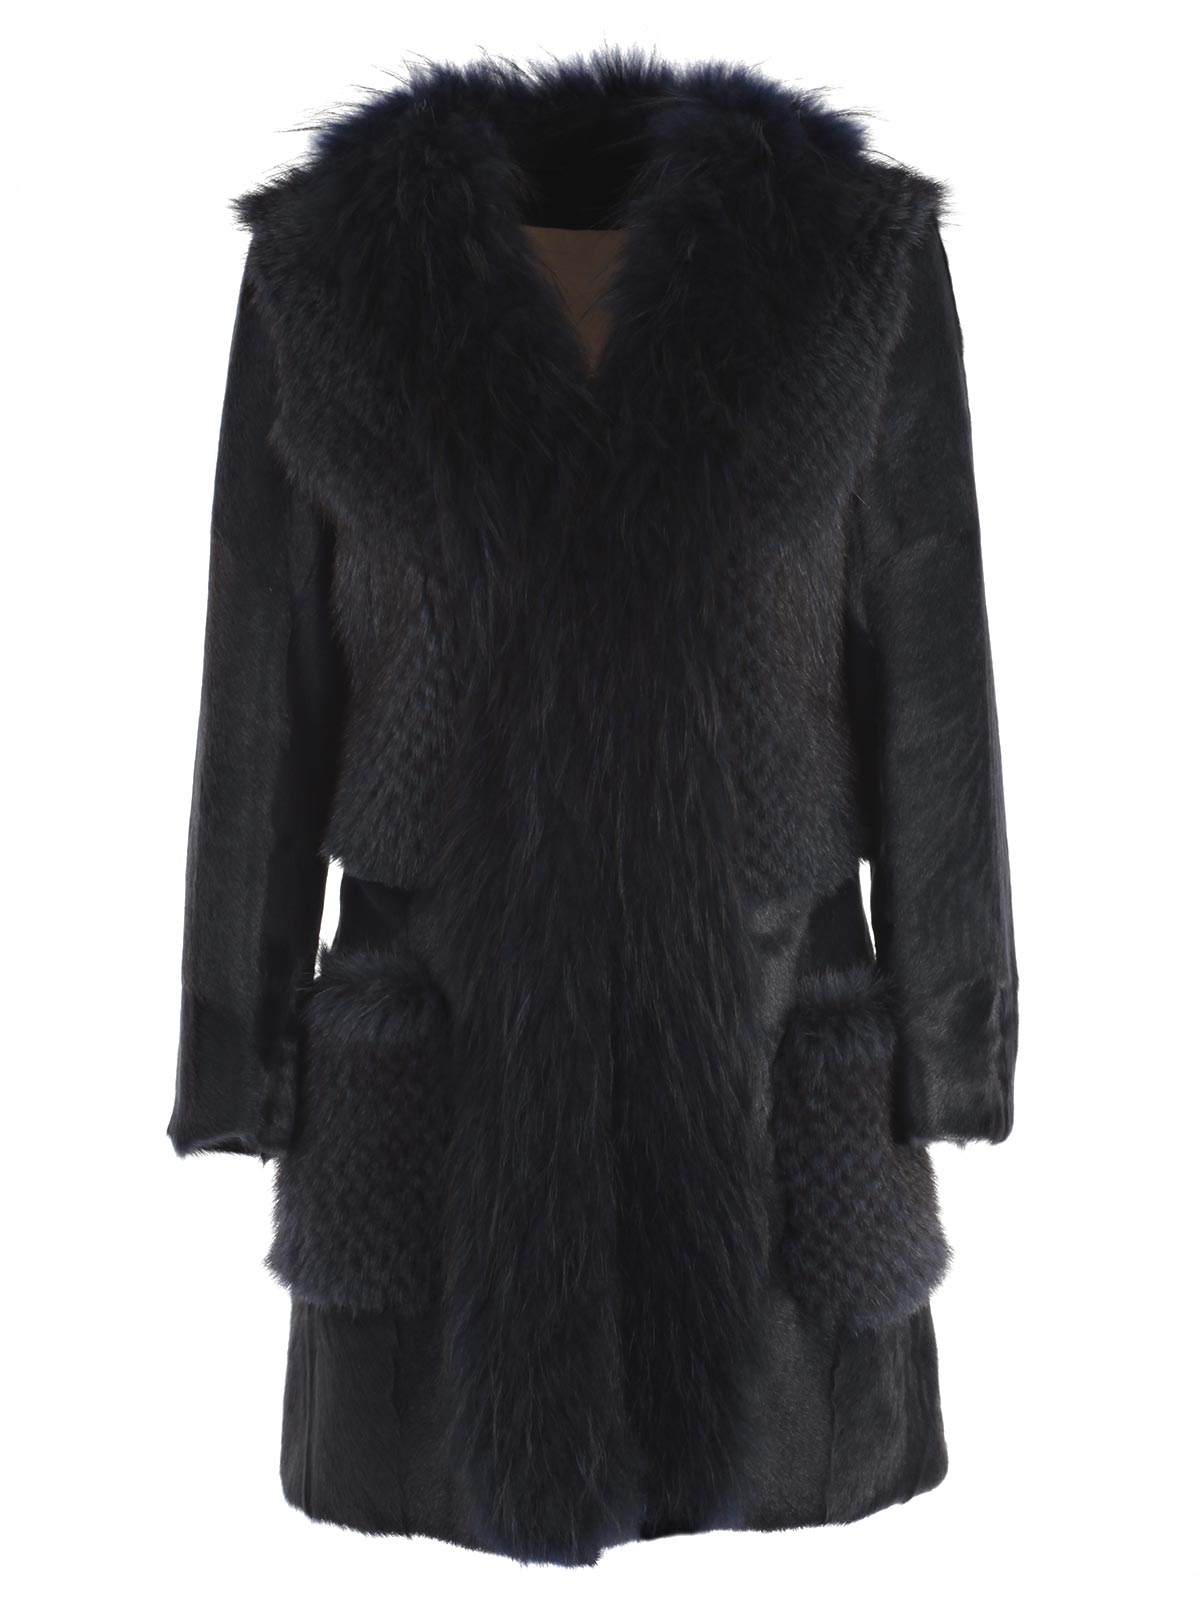 Picture of S.W.O.R.D. COAT CAPPOTTO PATCHWORK PELLICCIA